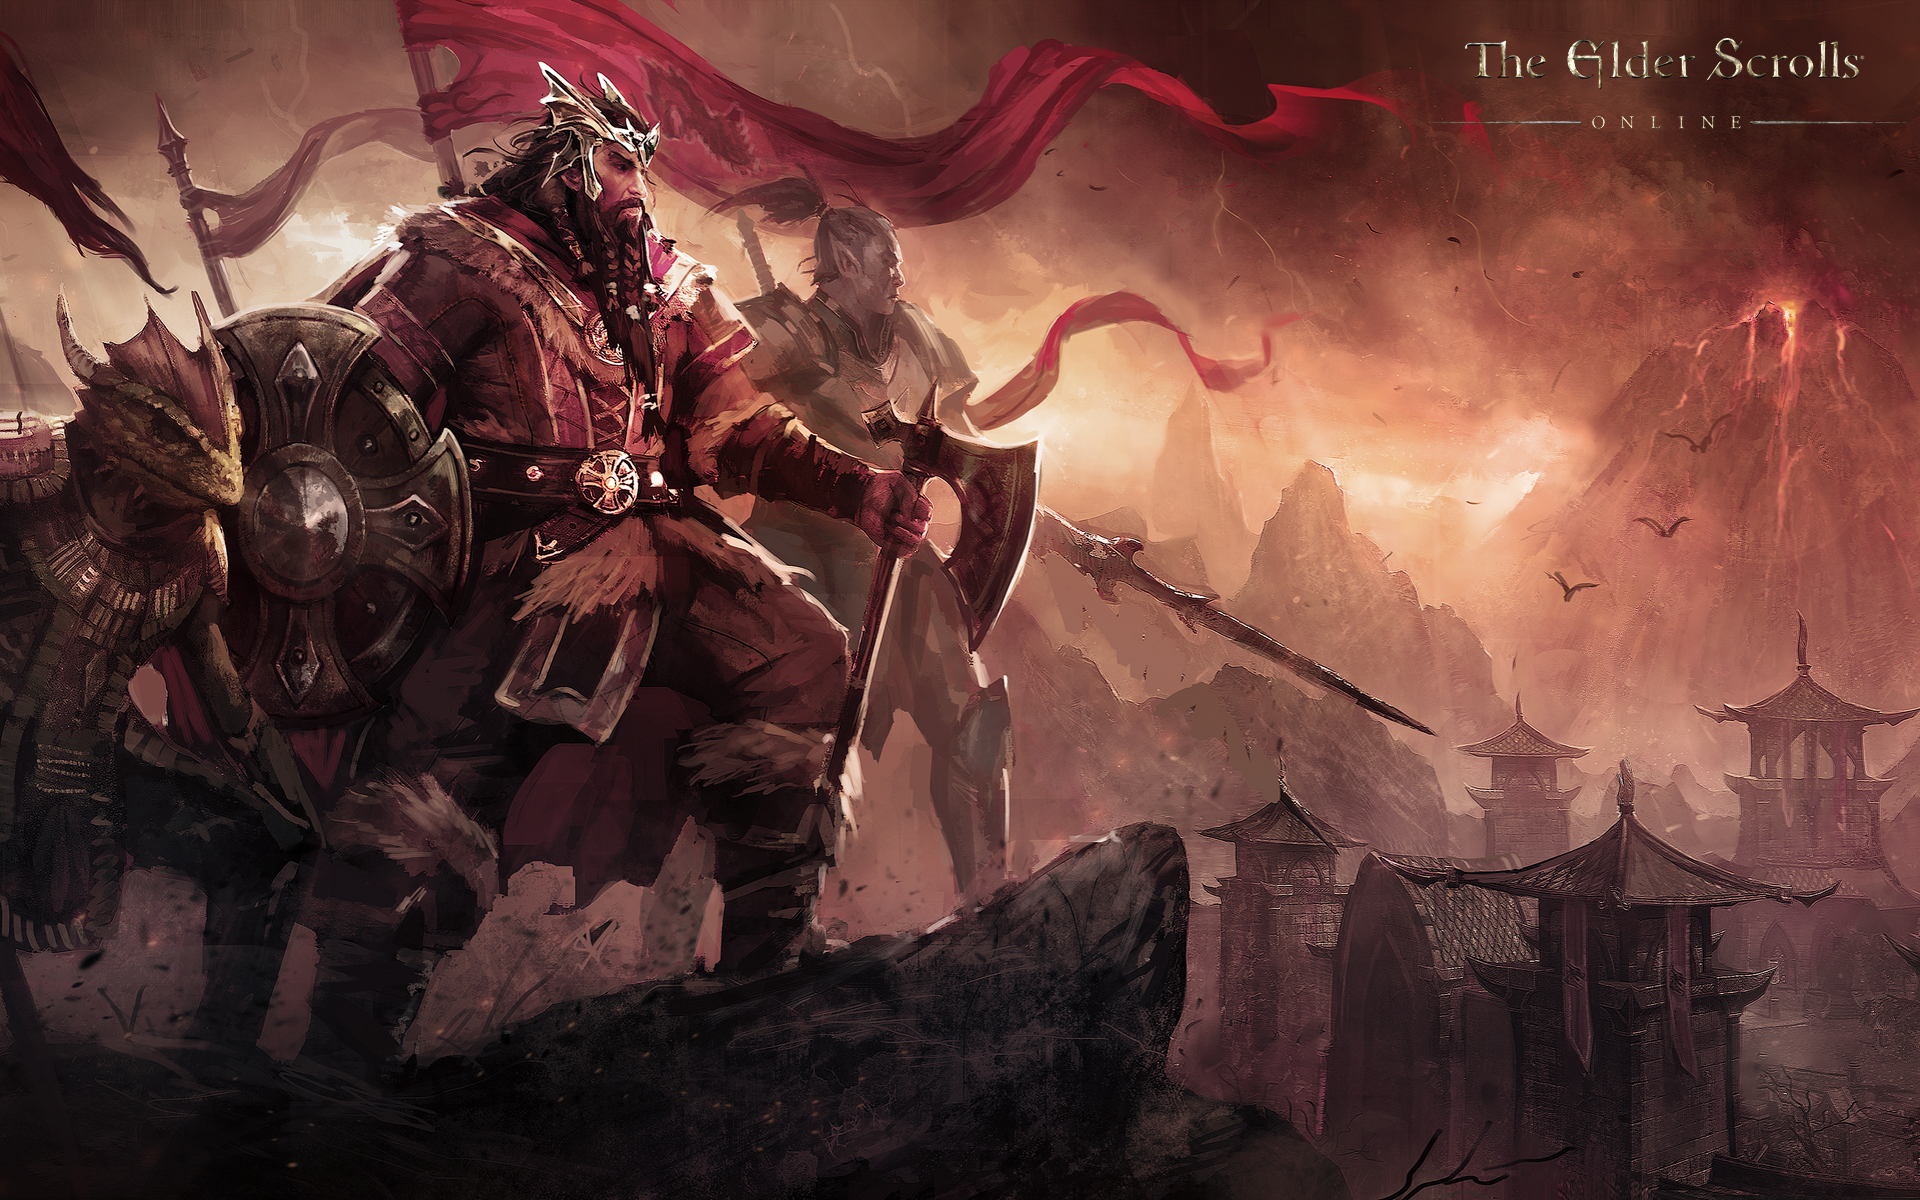 Wallpaper The Elder Scrolls Online: Nord king Jorunn